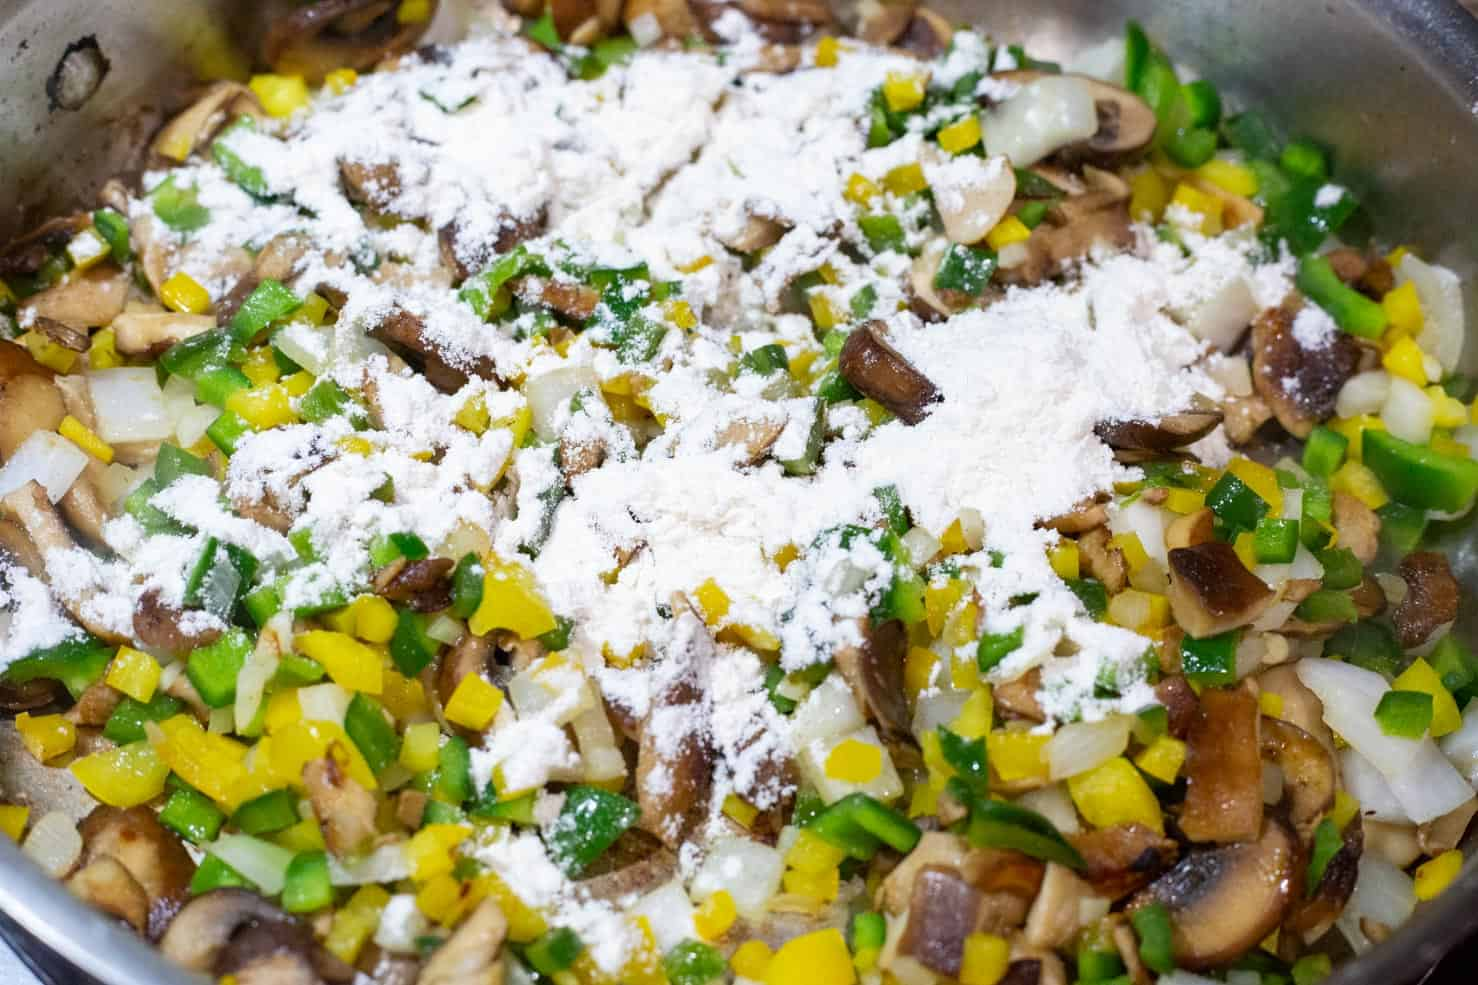 Sauteed poblano, yellow bell pepper, onion, and sprinkled with flour.